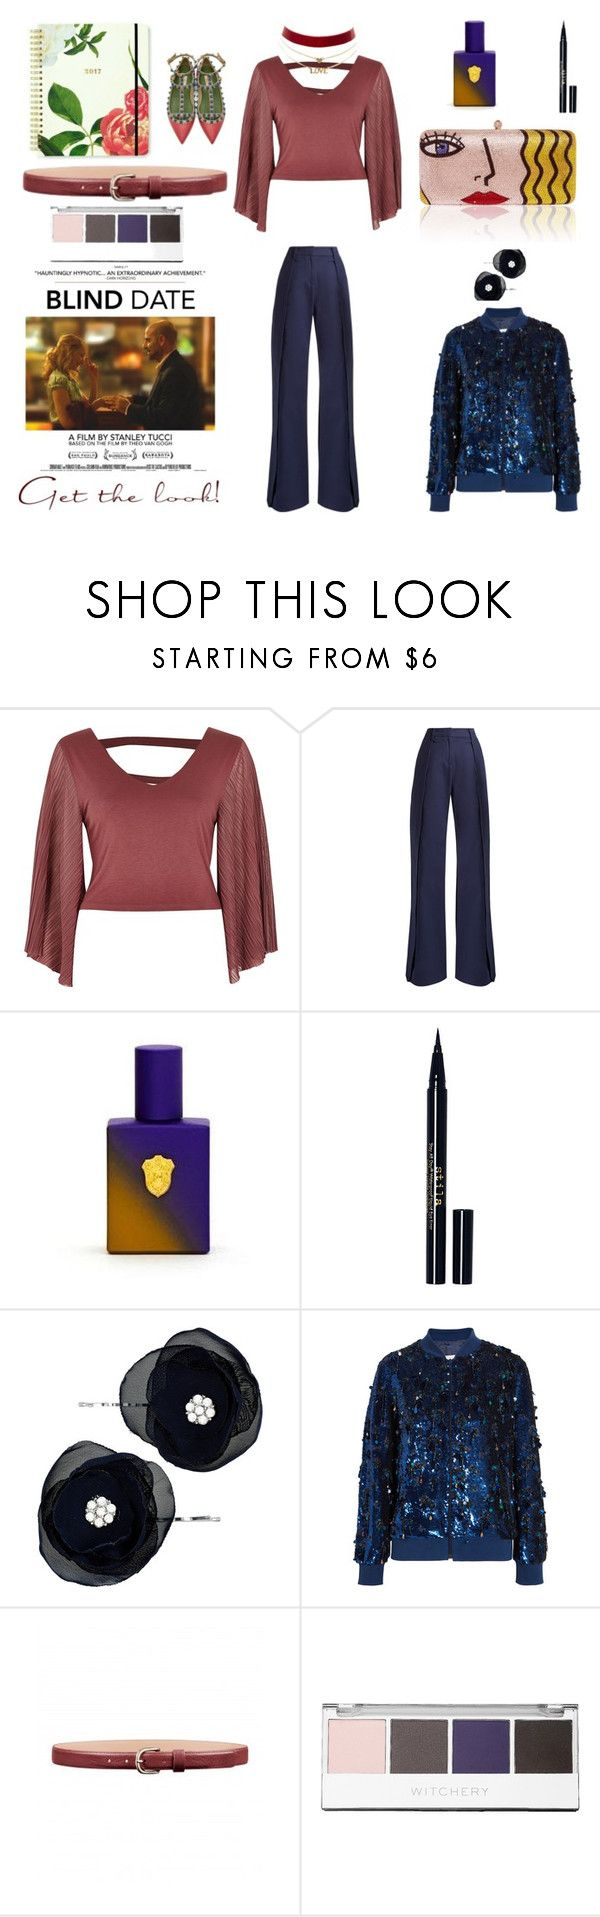 """""""Movie Date"""" by peeweevaaz ❤ liked on Polyvore featuring River Island, palmer//harding, Thayer, Stila, Accessorize, Ashish, Witchery, Charlotte Russe, outfit and polyvoreeditorial"""